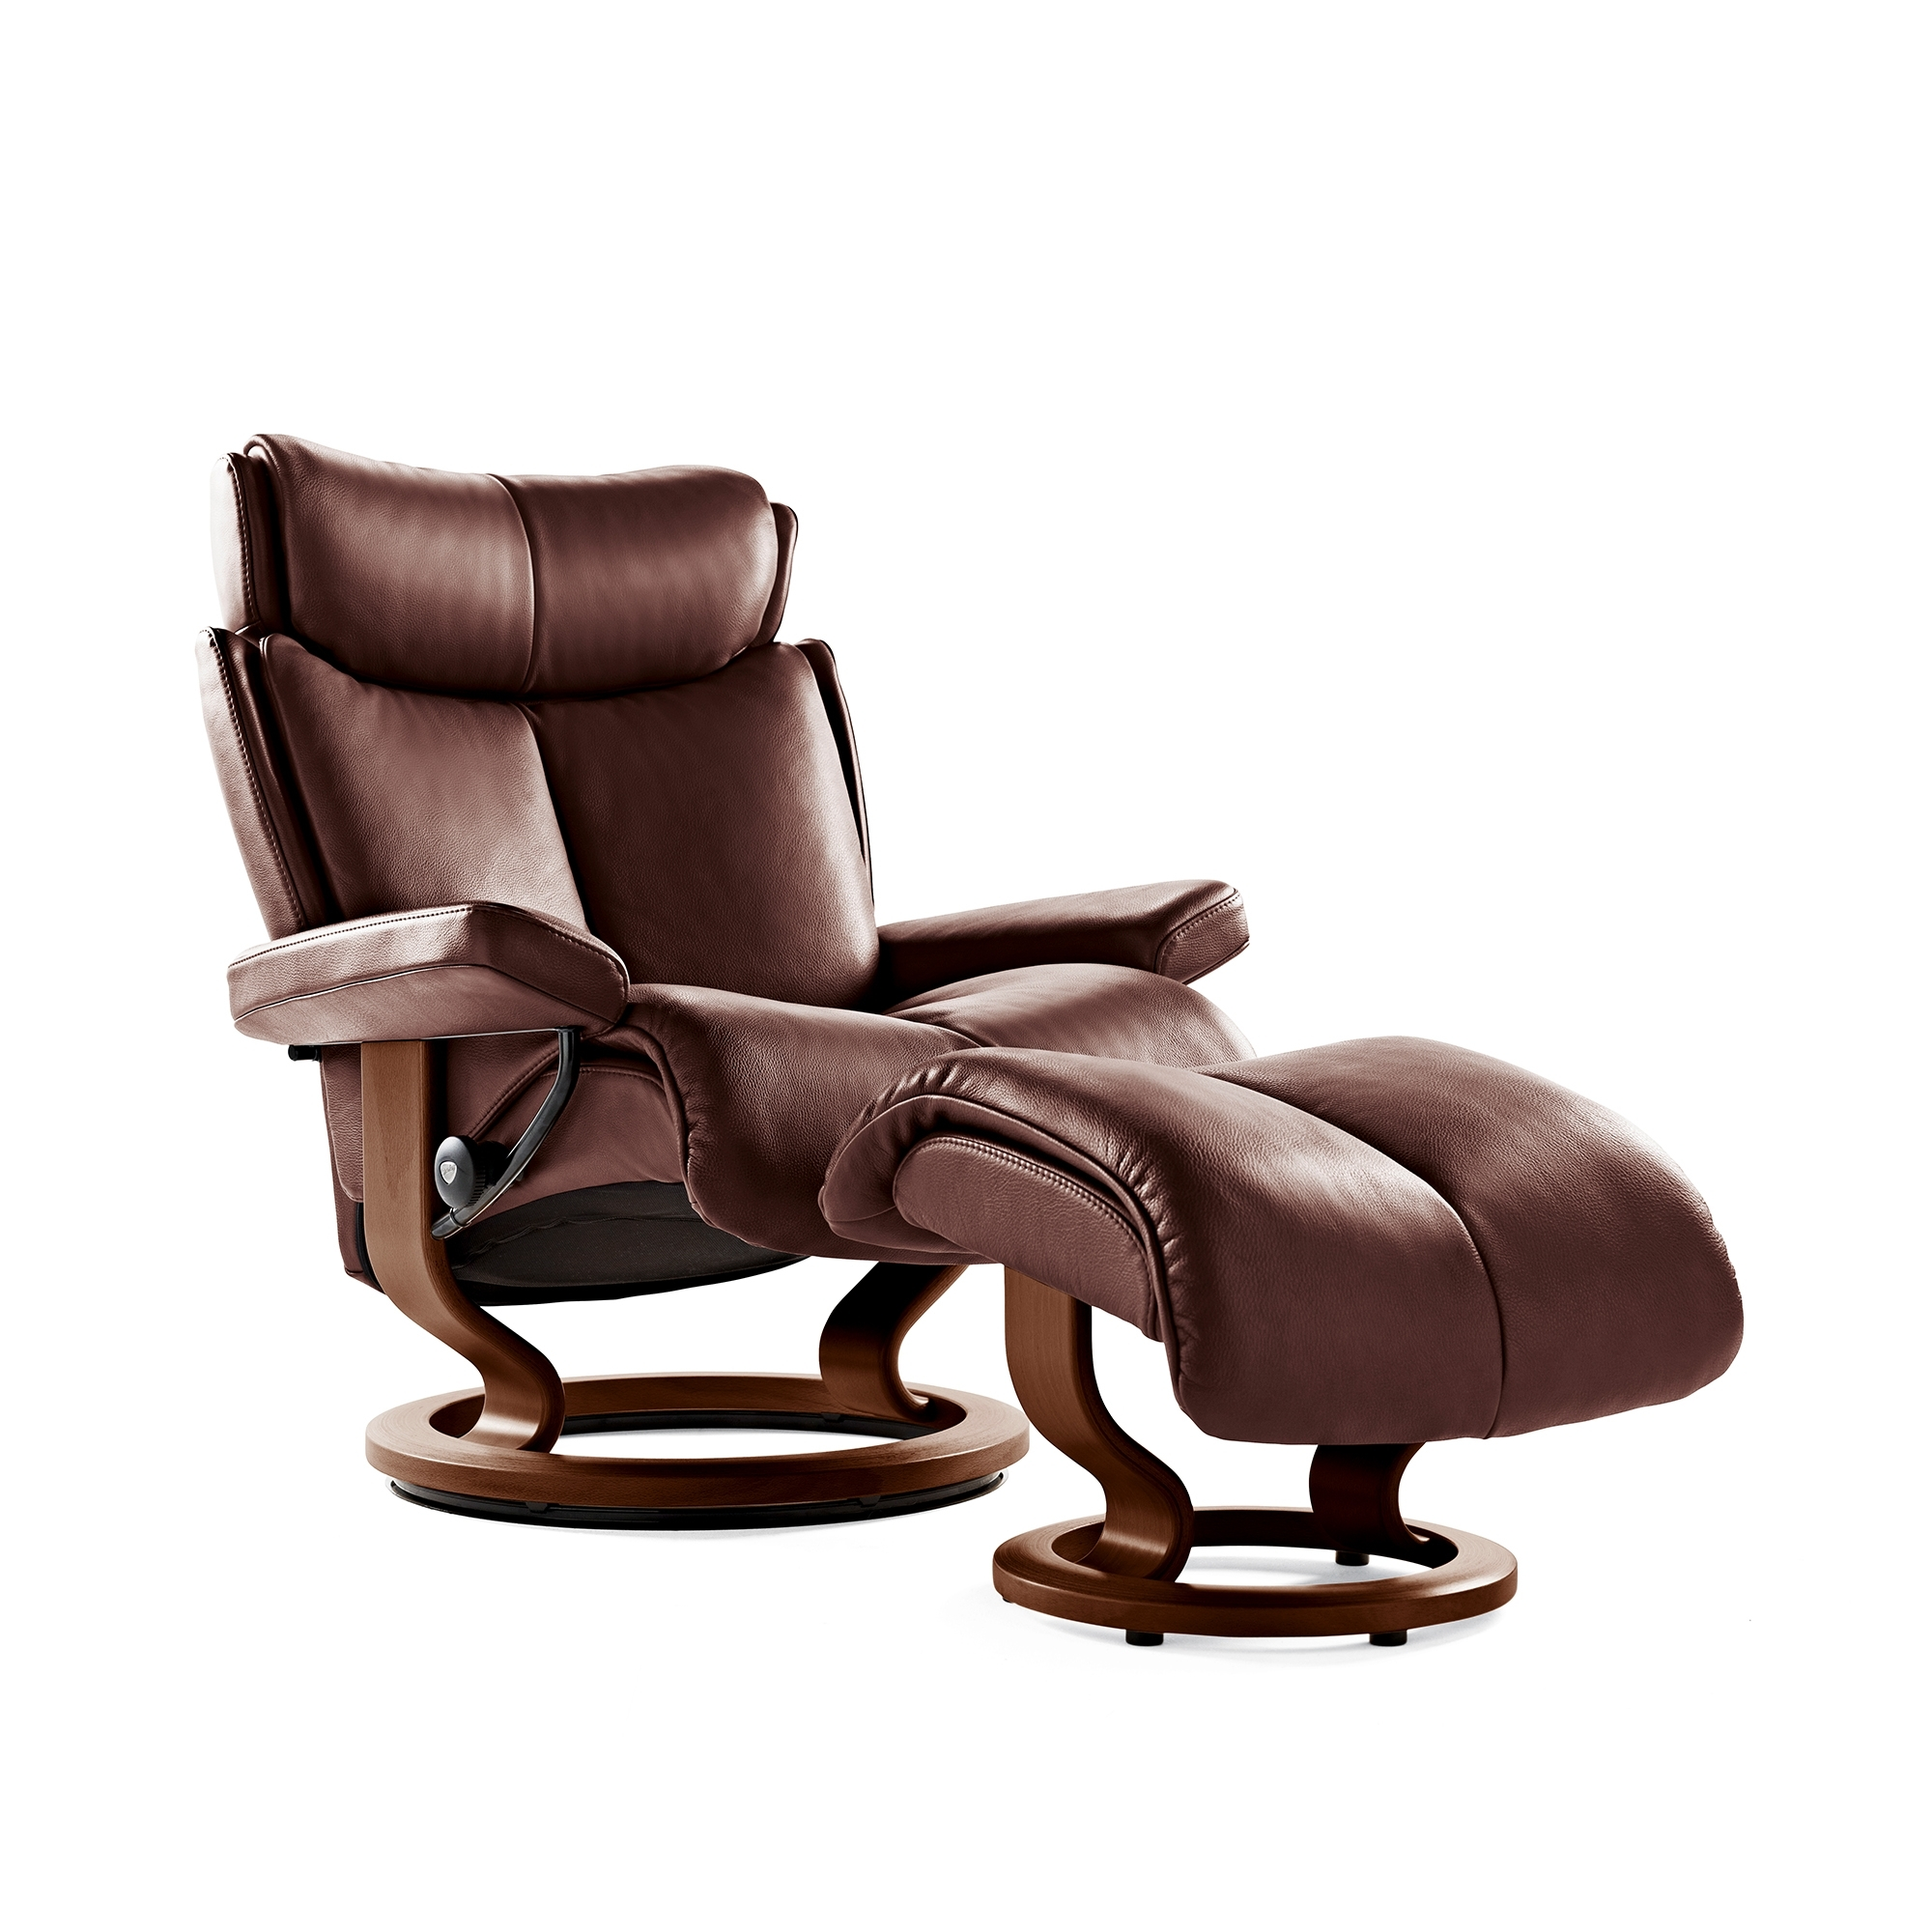 Stressless Chair Prices Stressless Magic Chair And Stool Cookes Furniture